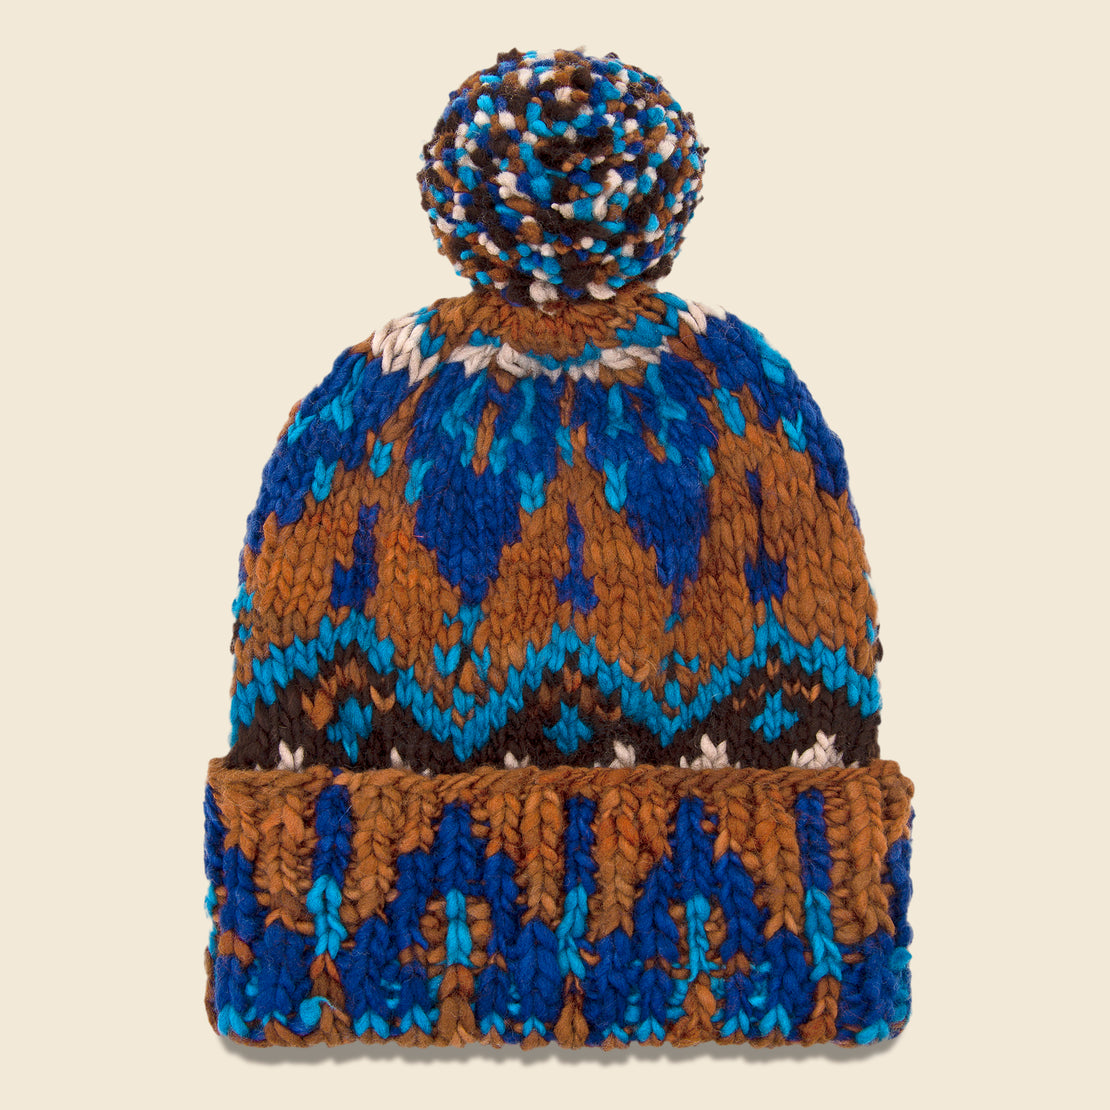 Chamula Double Cuff Fair Isle Cap - Intense Royal